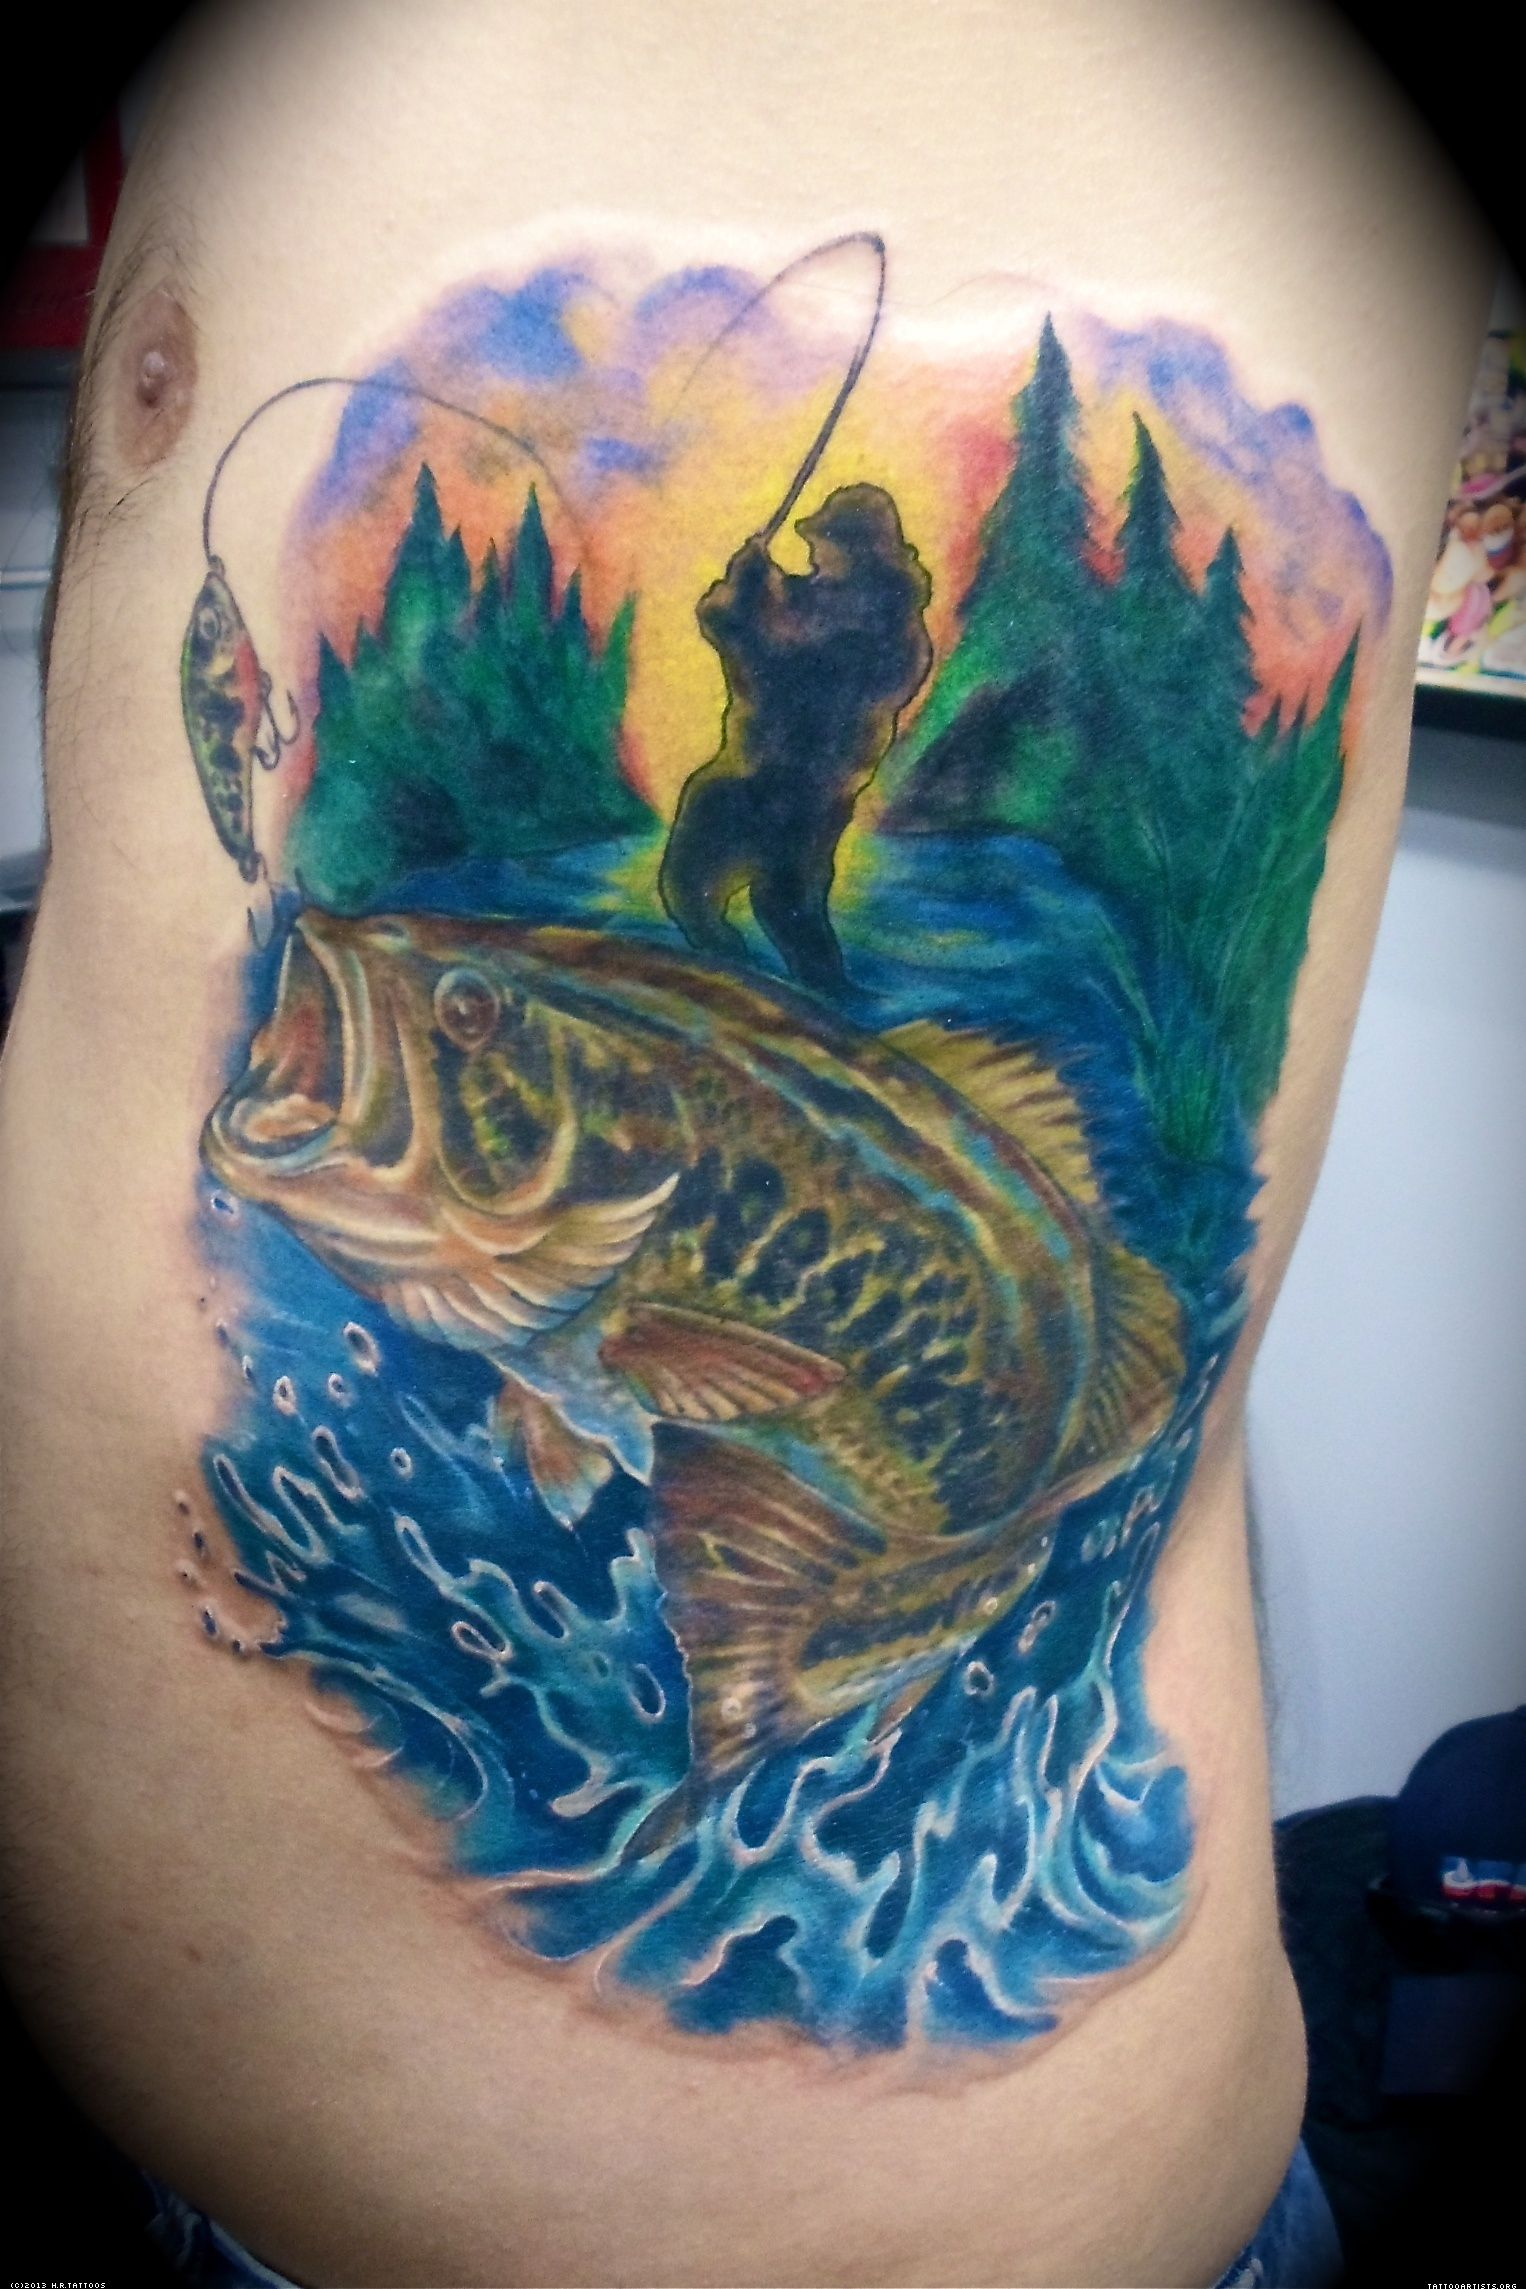 Badass Fishing Tattoo Thrill On Fish Tattoos Bass Fishing Tattoo Cute Tattoos